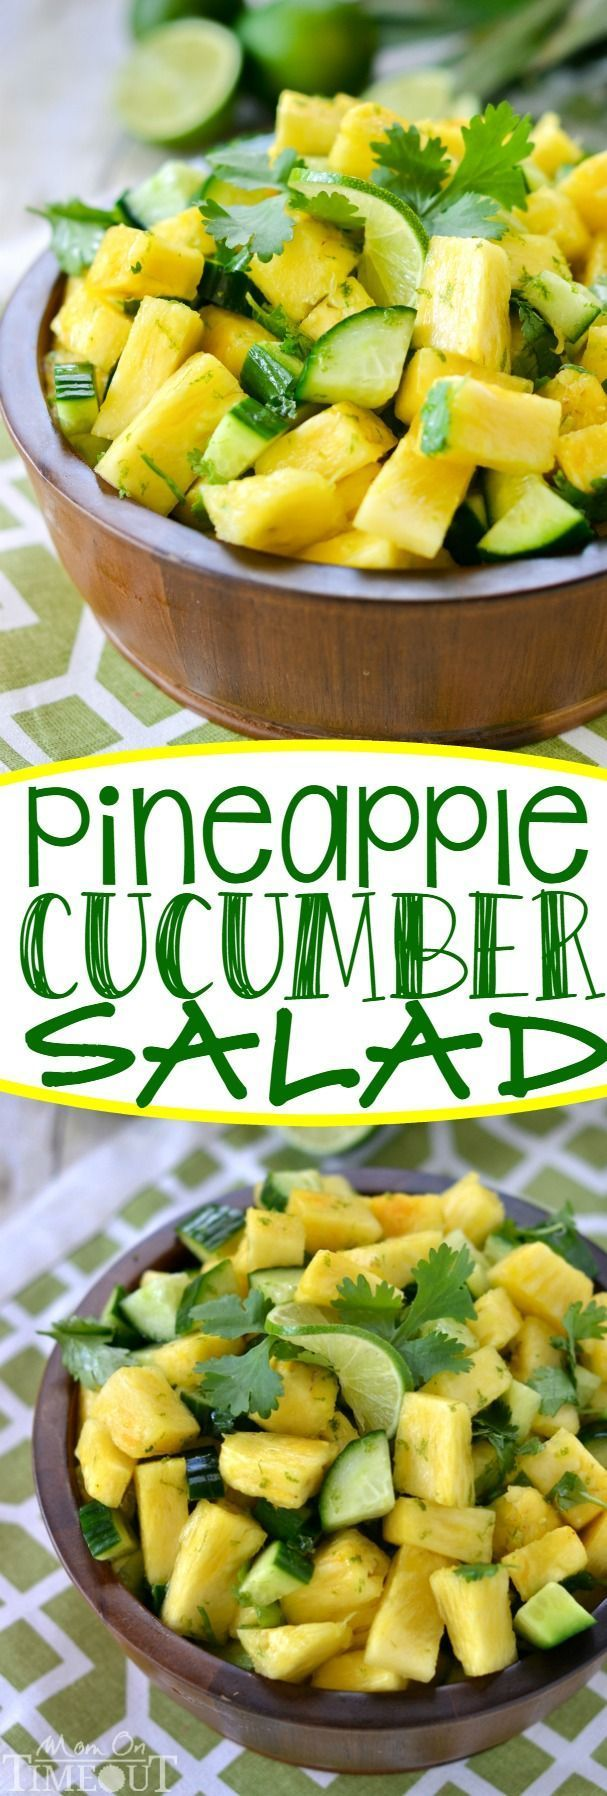 This perfectly refreshing Pineapple Cucumber Salad is wonderfully easy to make and simply delicious! A gorgeous, healthy alternative to dessert!